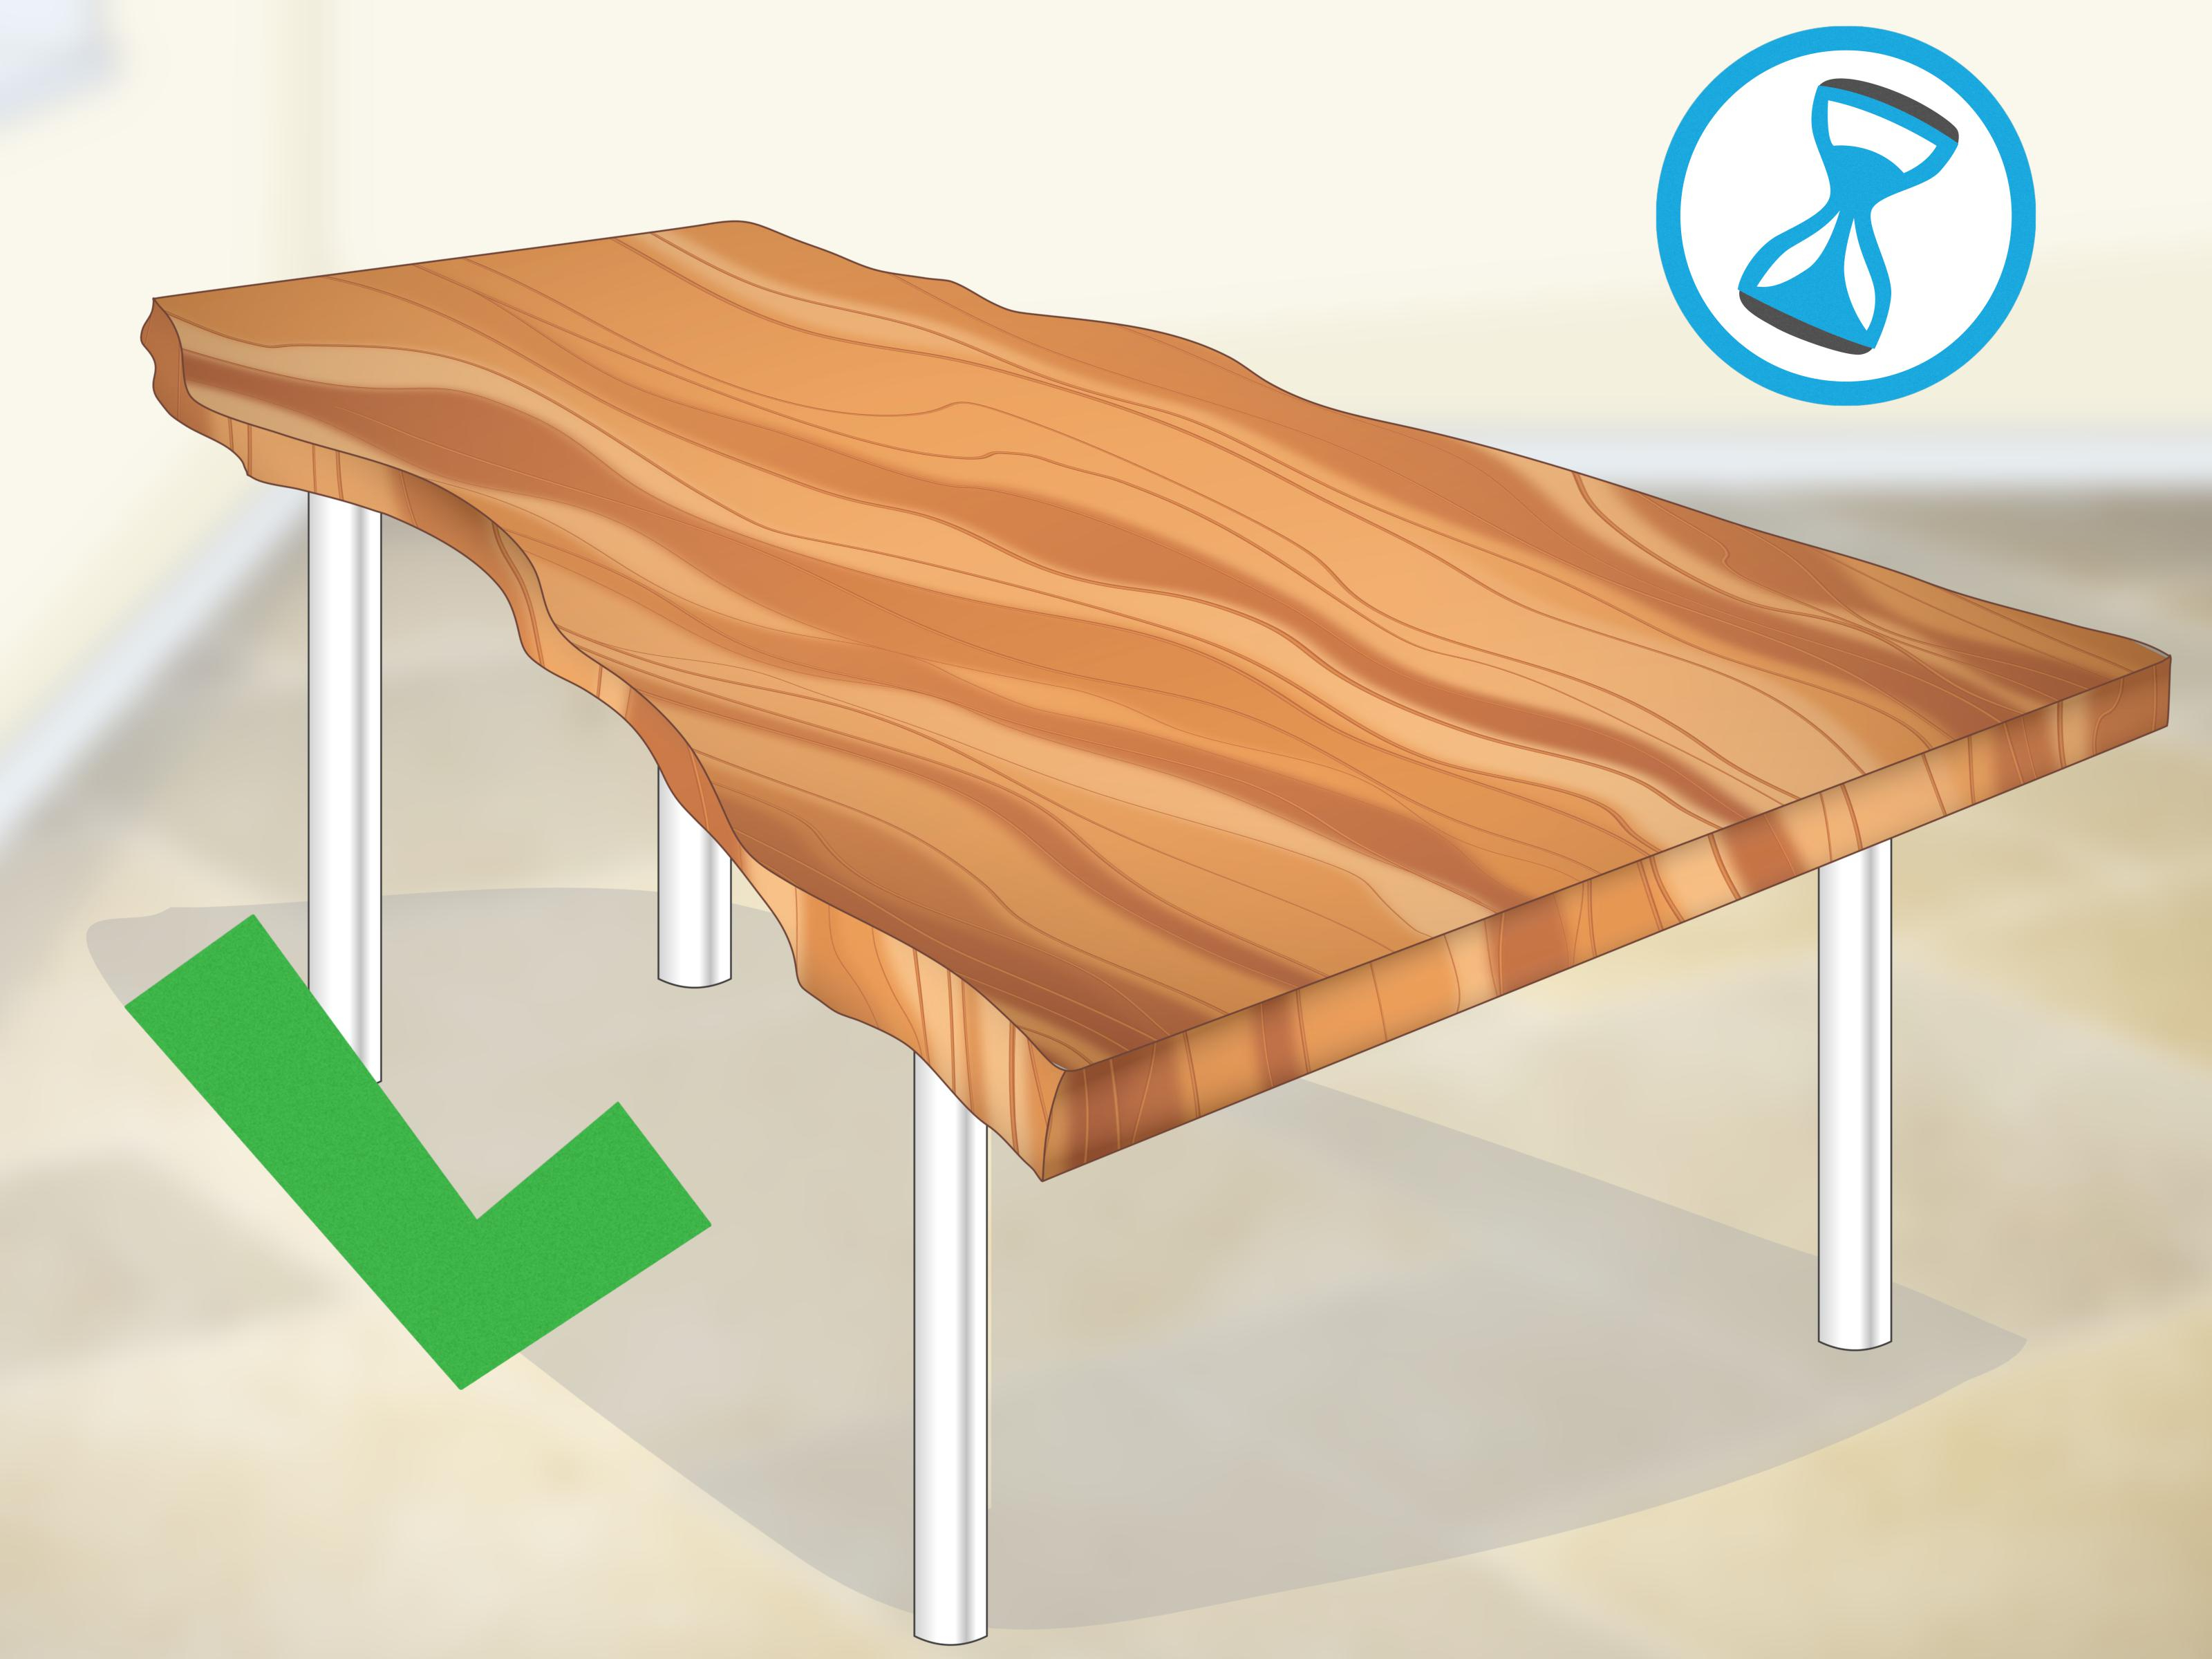 Natural Wheel Coffee Tables Within Most Up To Date How To Finish Live Edge Slabs (With Pictures) – Wikihow (View 16 of 20)